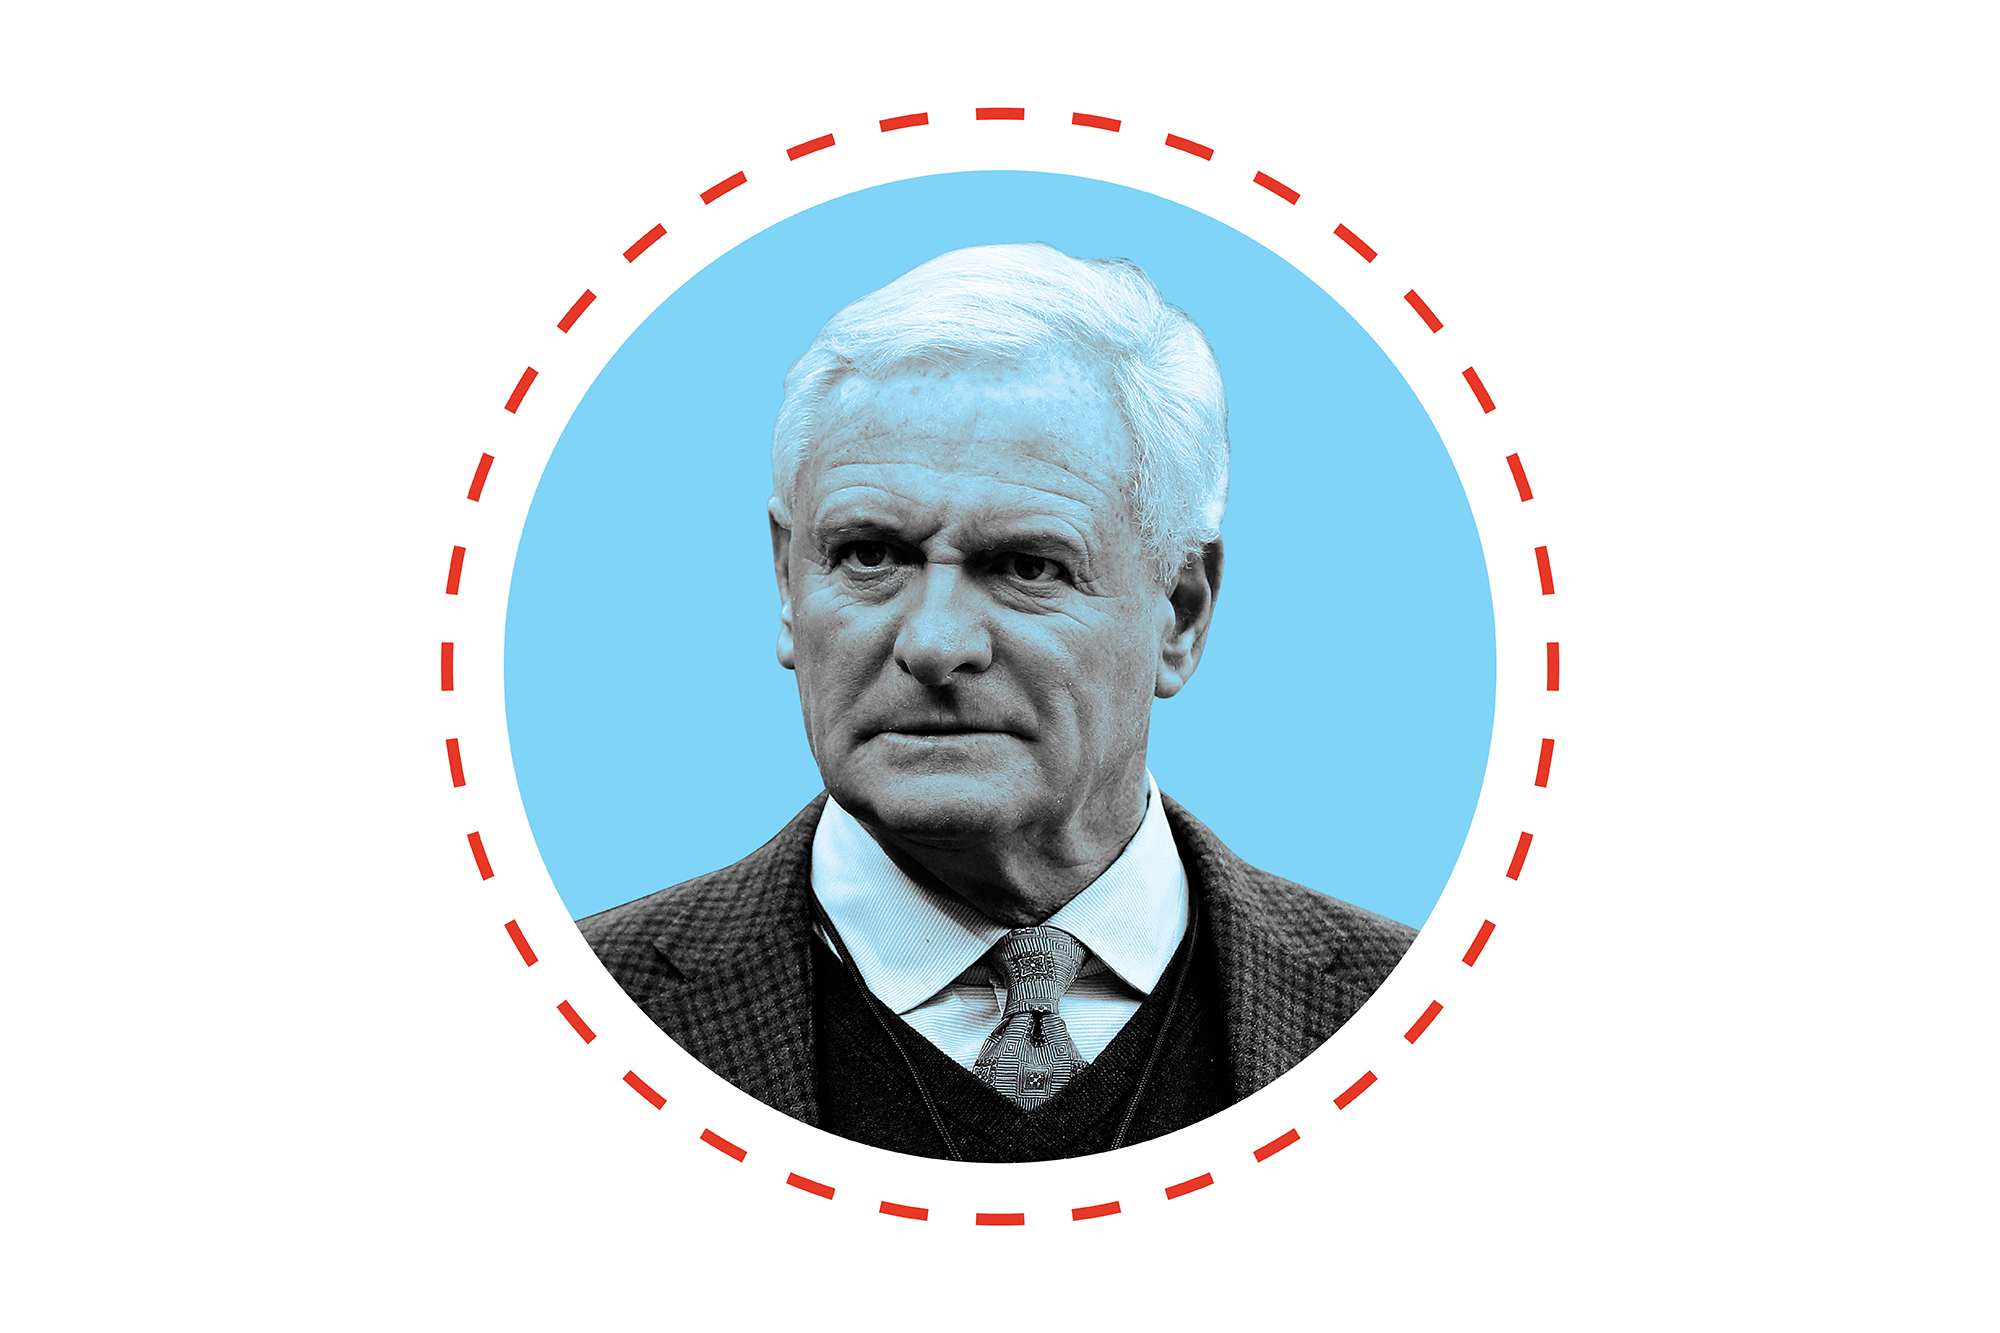 Cleveland Browns Owner: Jimmy Haslam net worth, political donations